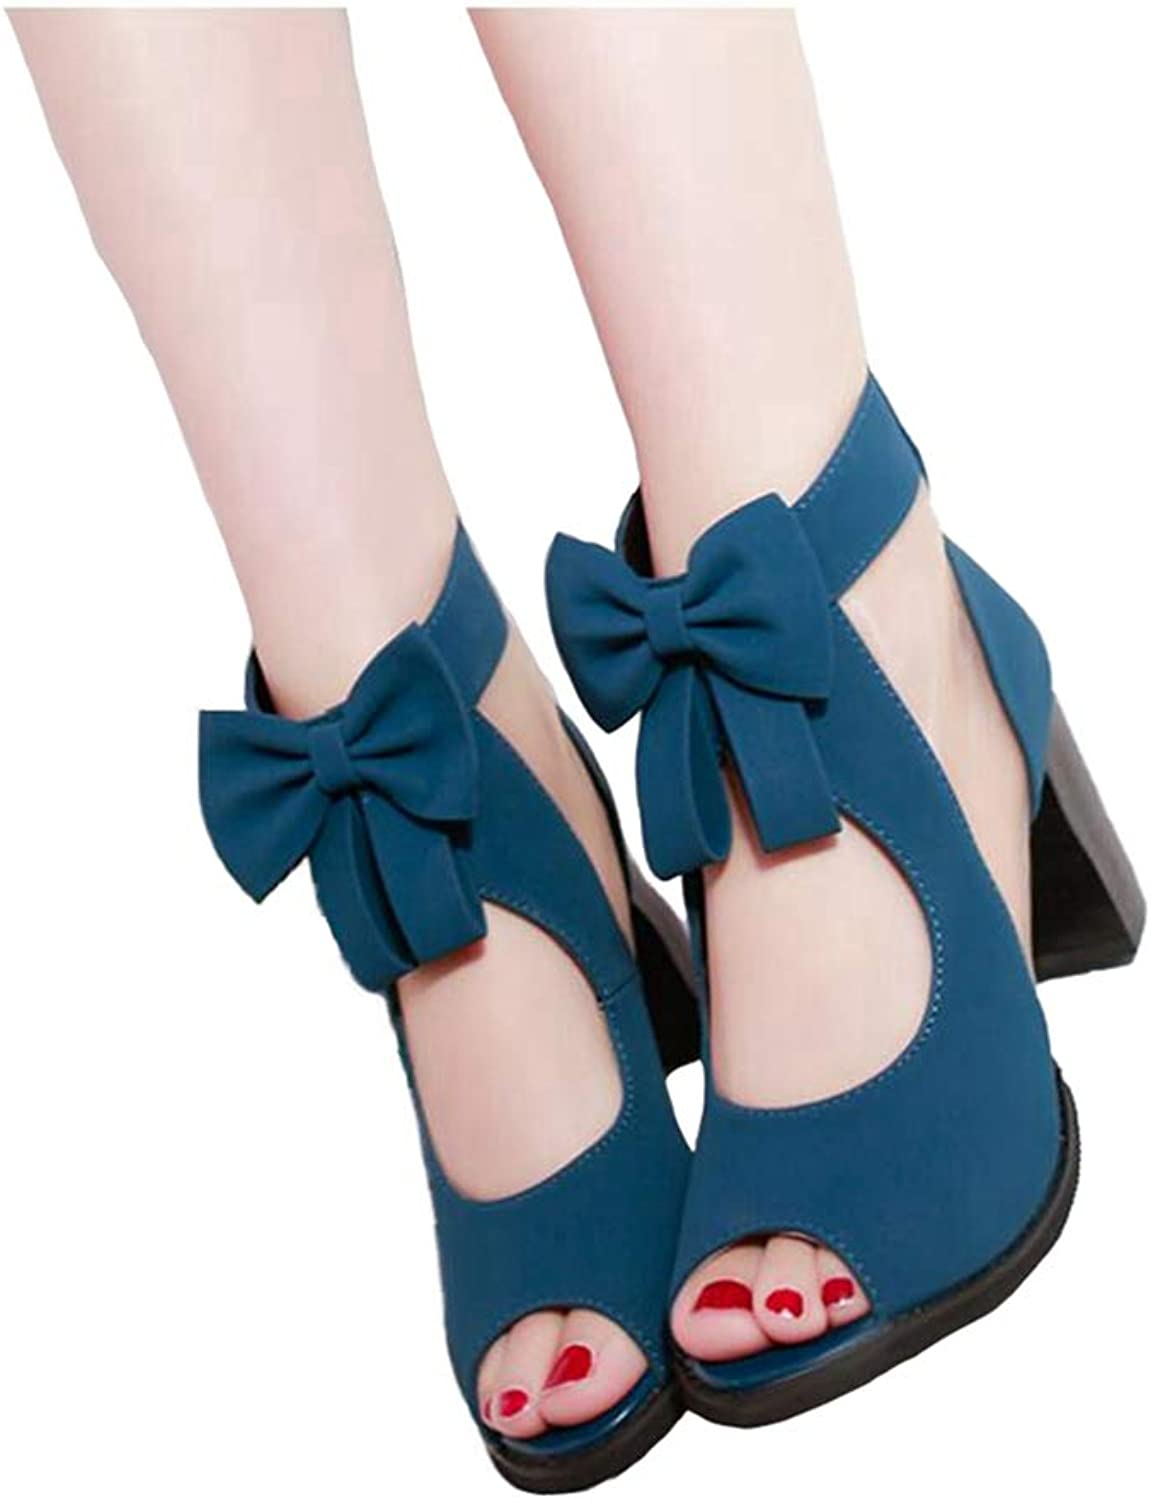 Ladies bluee Sandal Bow Knot Zipper High Heel Sandals Spring Summer Fashion Knitted Women shoes